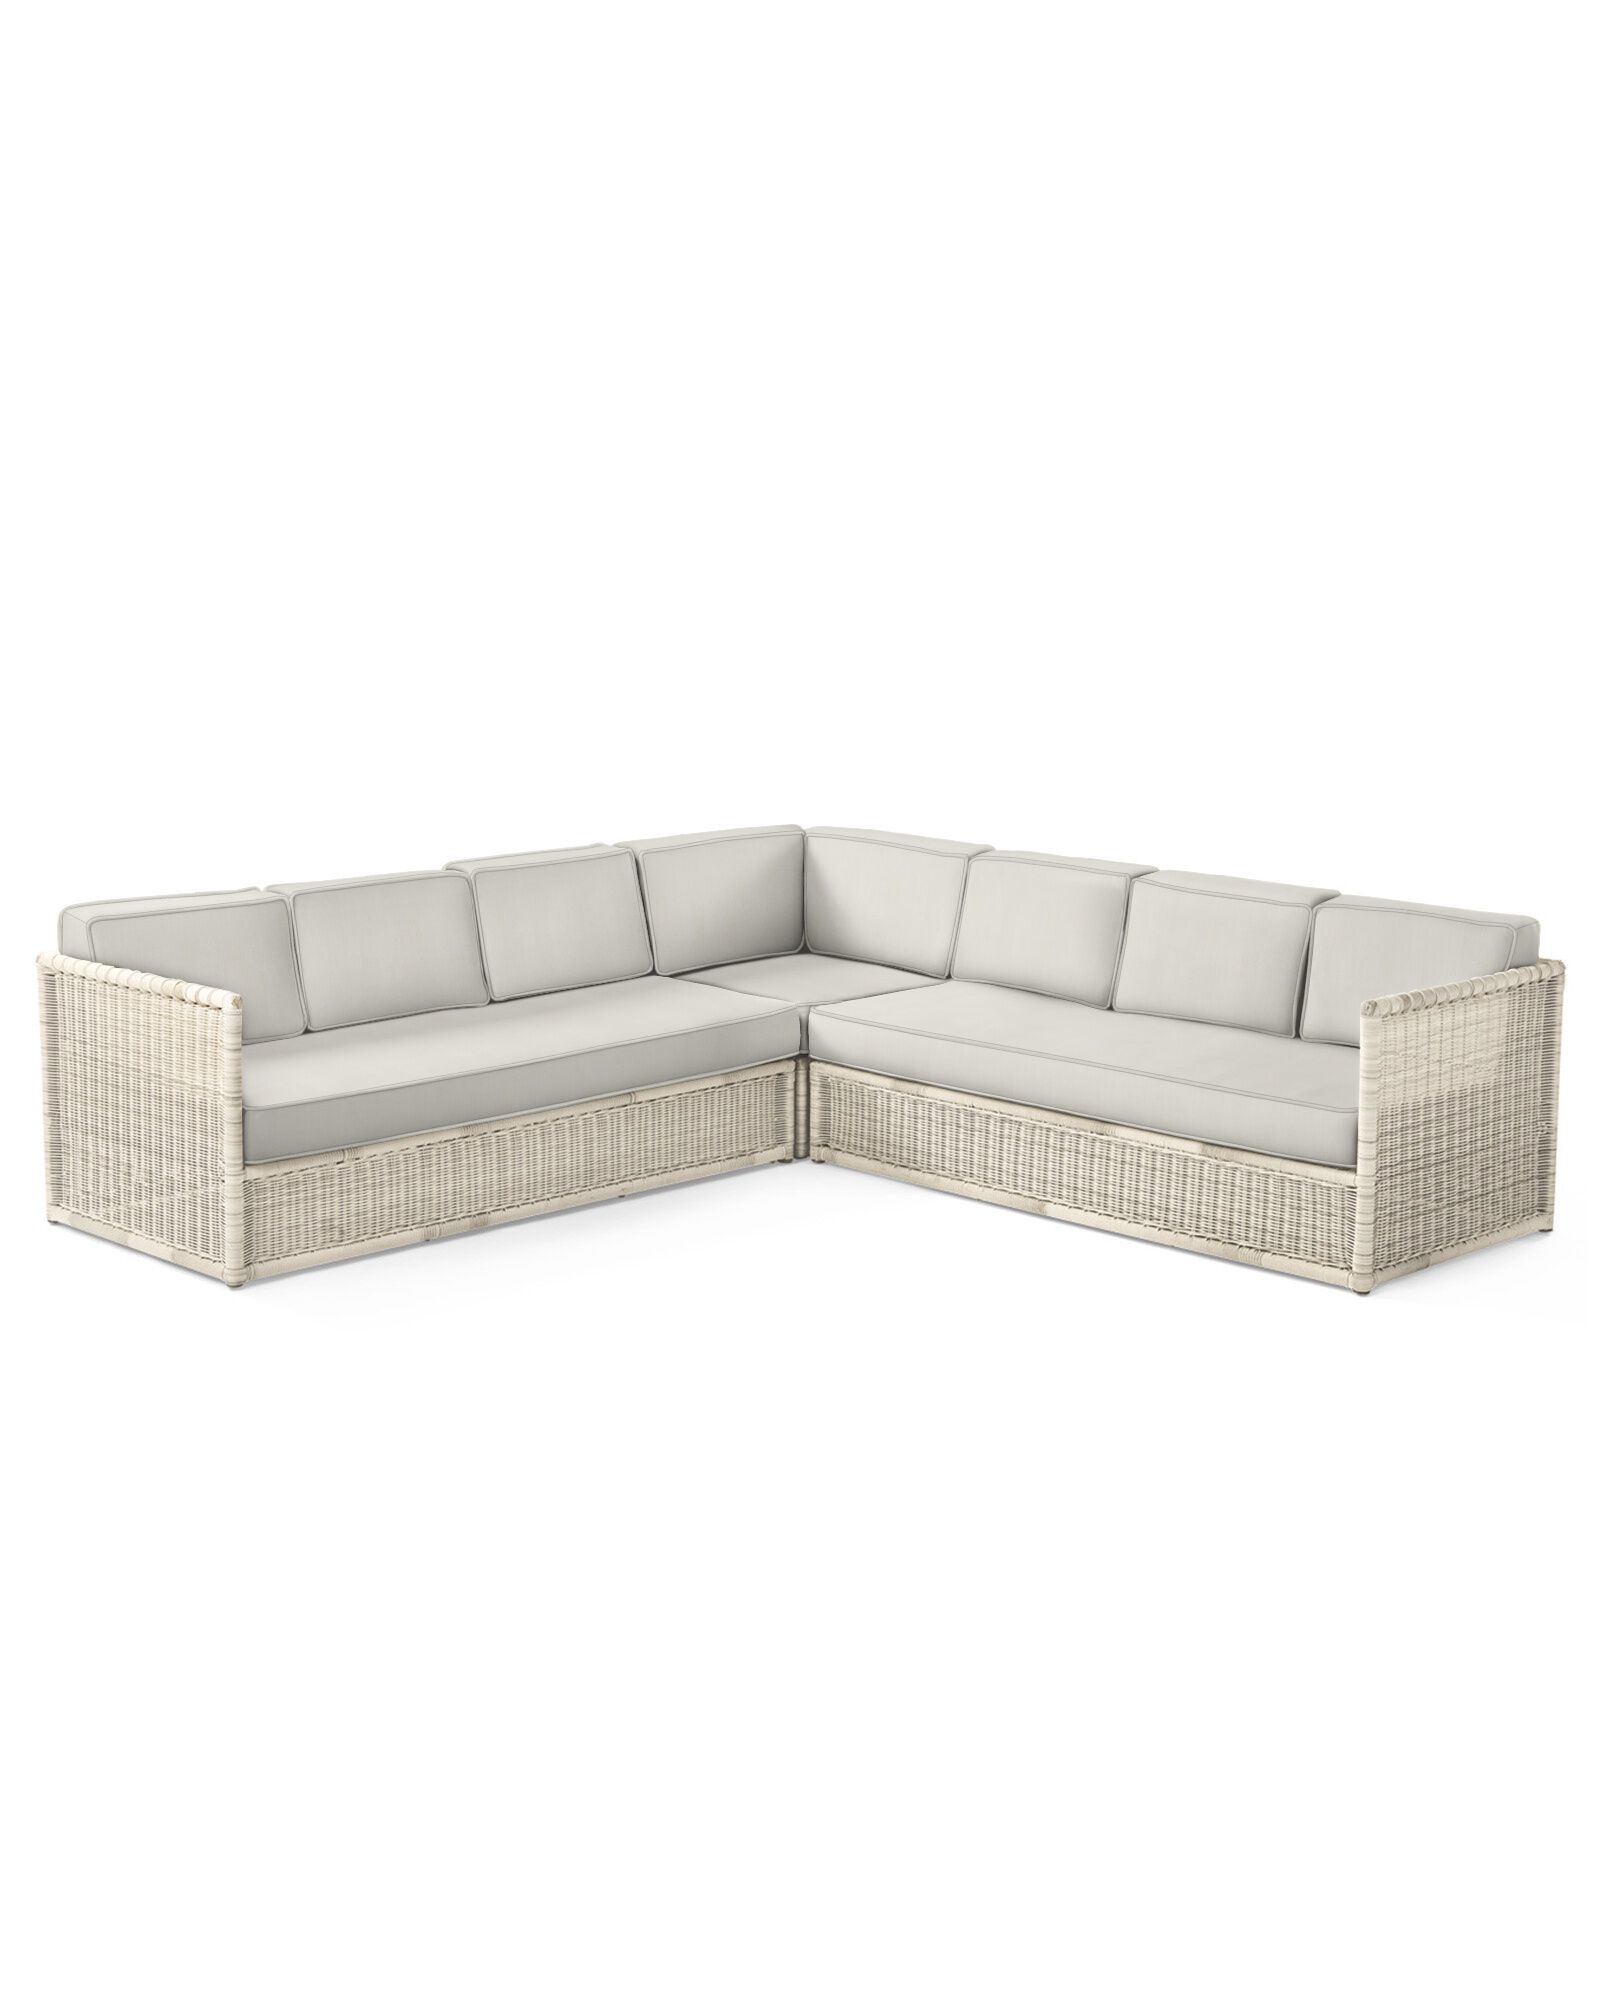 Cushion Cover for Pacifica Corner Sectional, Perennials Basketweave Chalk